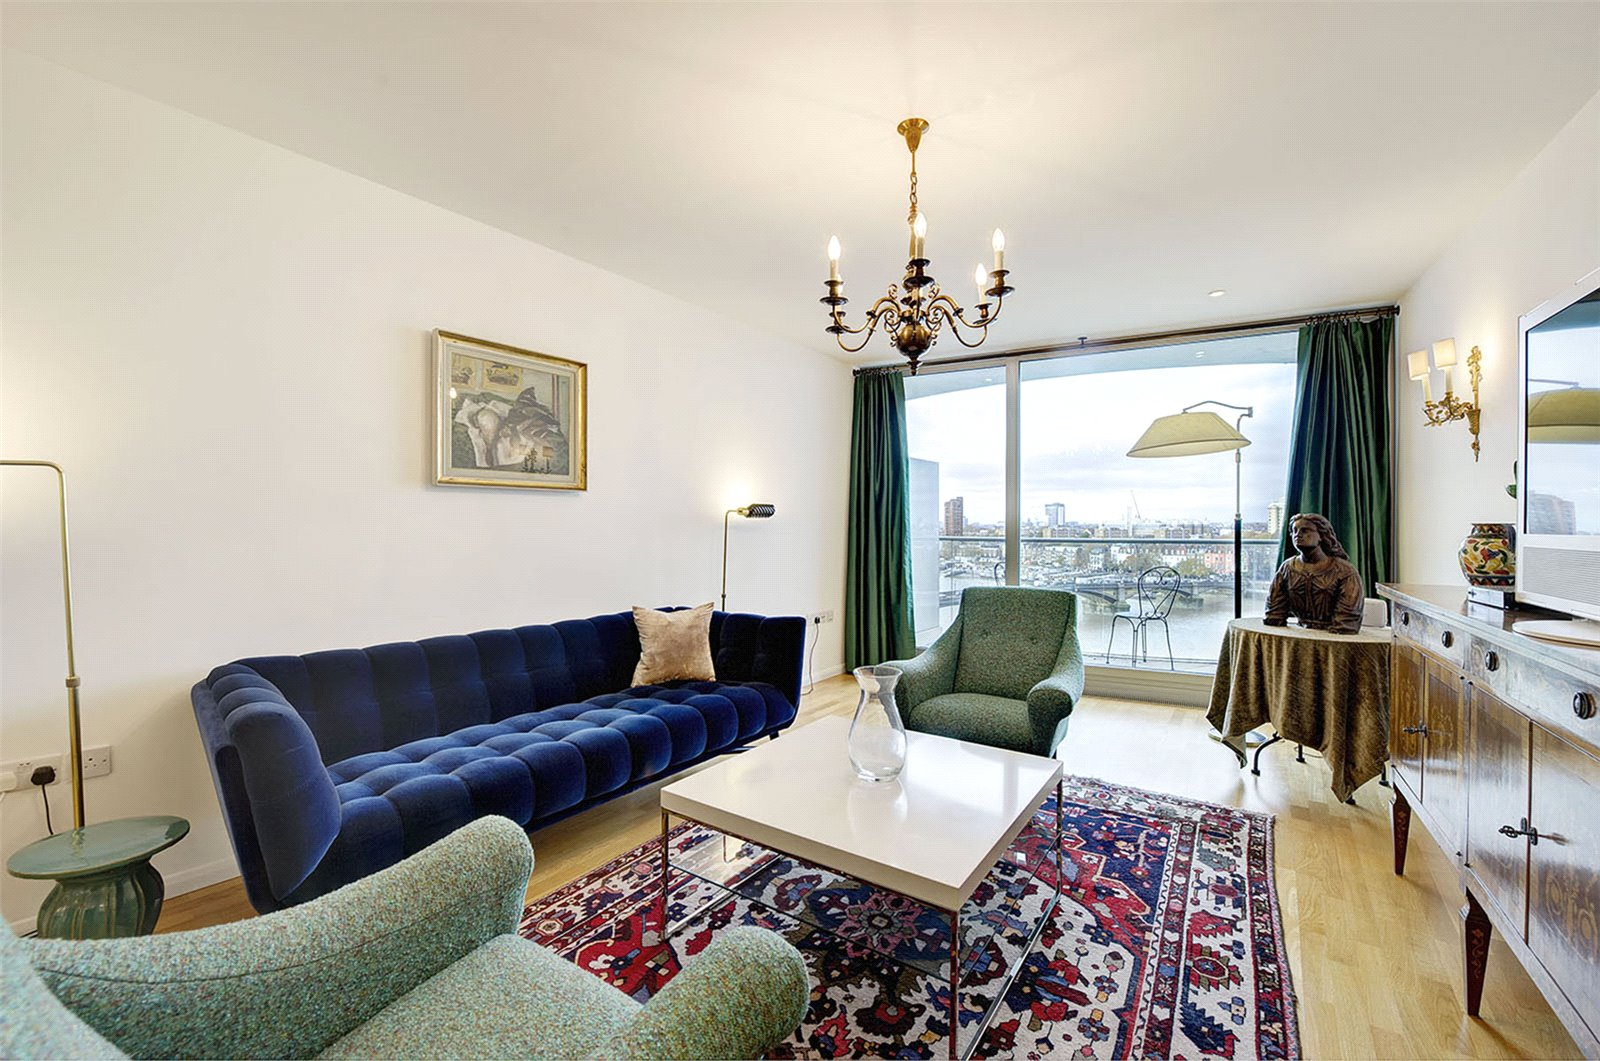 Apartments / Flats for Rent at Albion Riverside, Battersea, London, SW11 Albion Riverside, Battersea, London, SW11